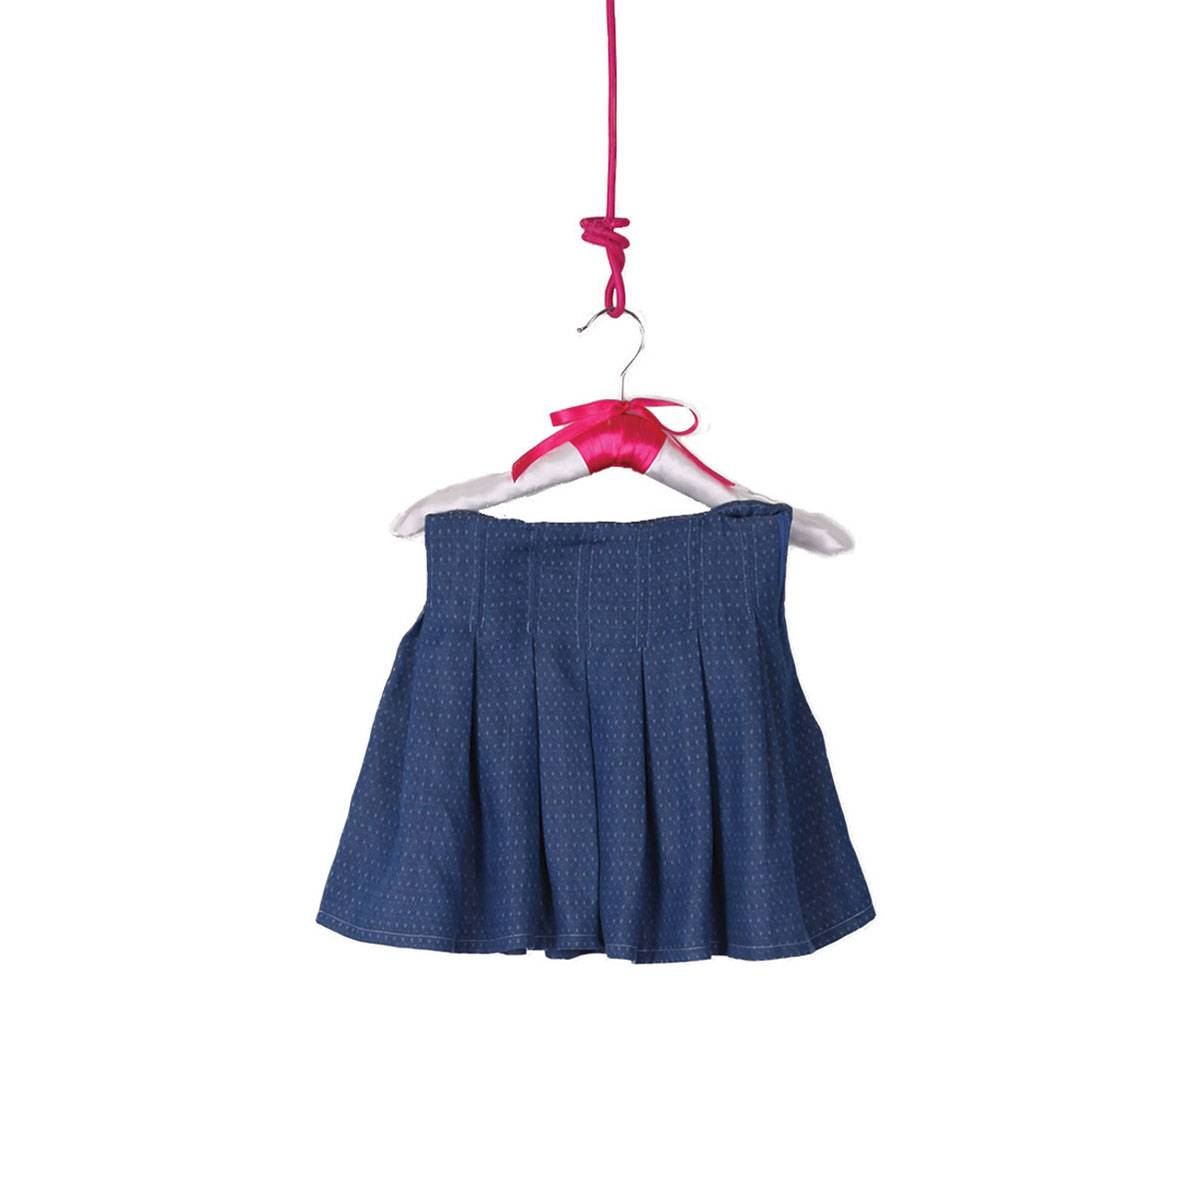 Patron Enfant Jupe - Dragibus - Made In Me Couture